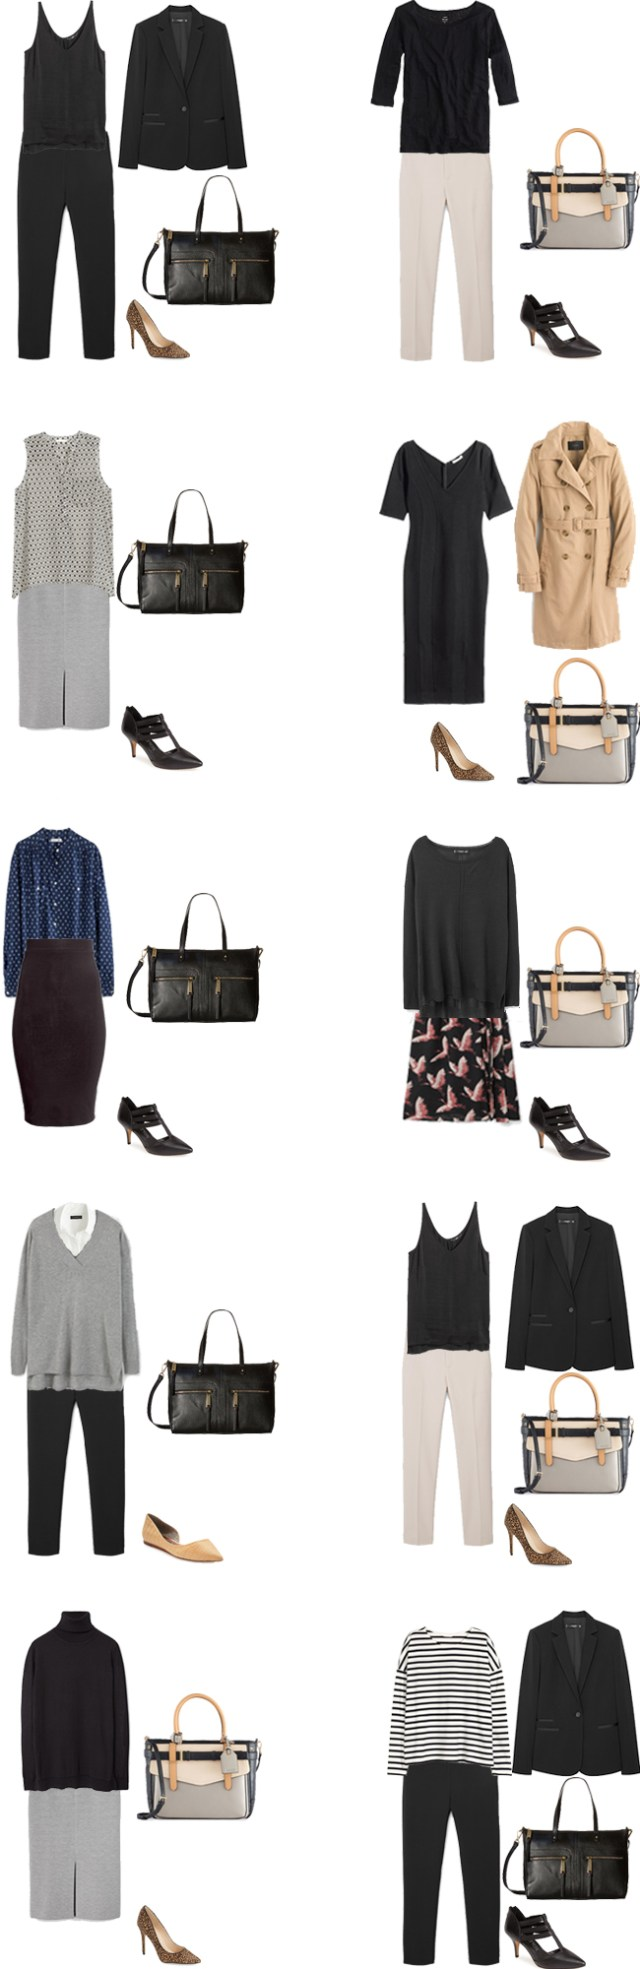 Basic Work Capsule Outfits 31-40 #capsulewardrobe #workwardrobe #workwear #capsule